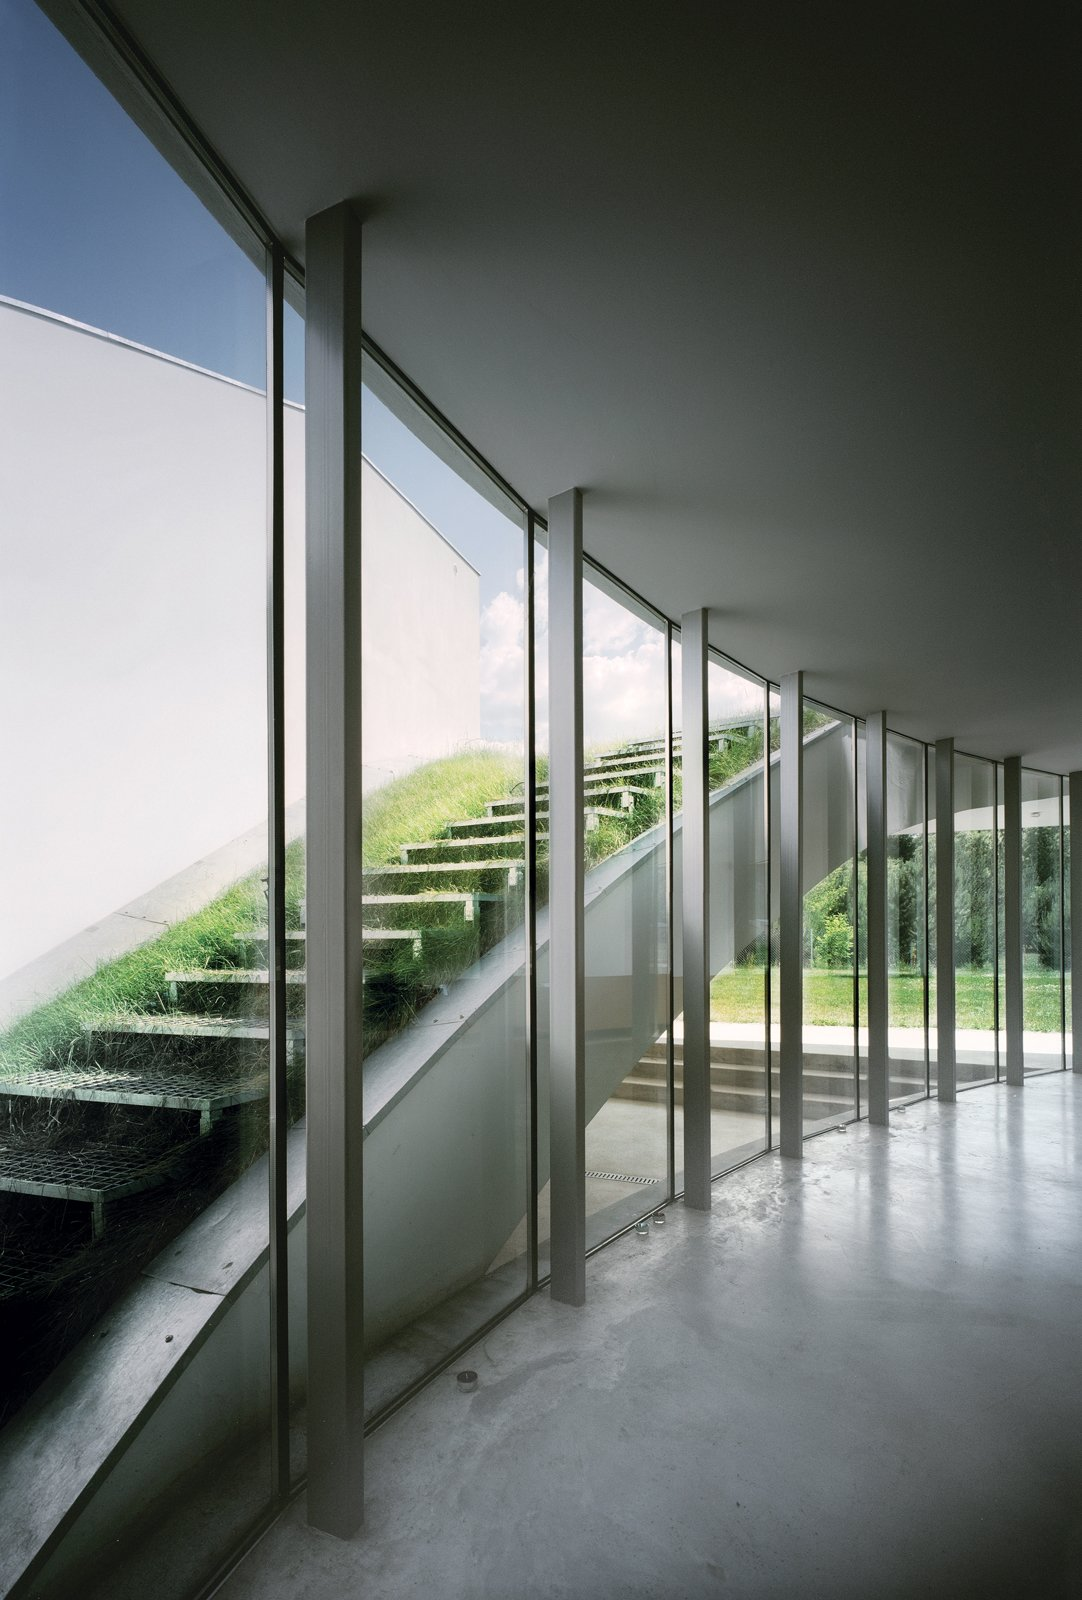 The expansive open-air living room on the first floor is framed with a curving wall of windows. The glass wall works as an outdoor atrium looking out on an exposed   sod-covered staircase and allows the room to be bathed in natural light.  190+ Best Modern Staircase Ideas from Modernist Rural Getaway in Poland